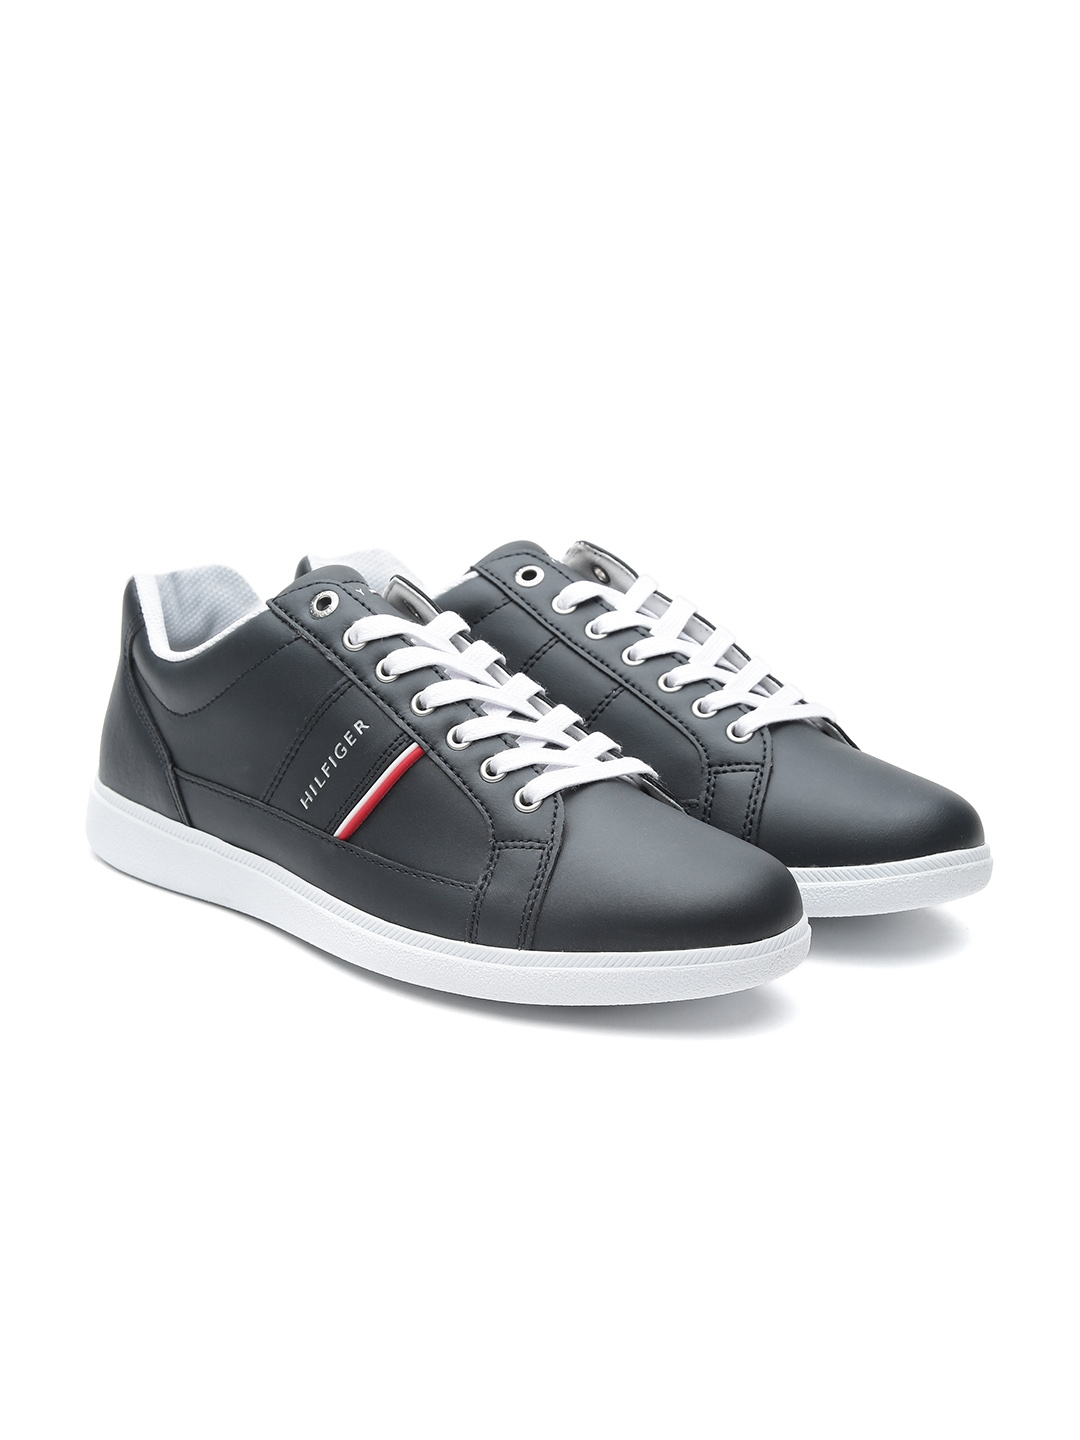 988cb3890a3970 Buy Tommy Hilfiger Men Navy Blue Leather Sneakers - Casual Shoes for ...